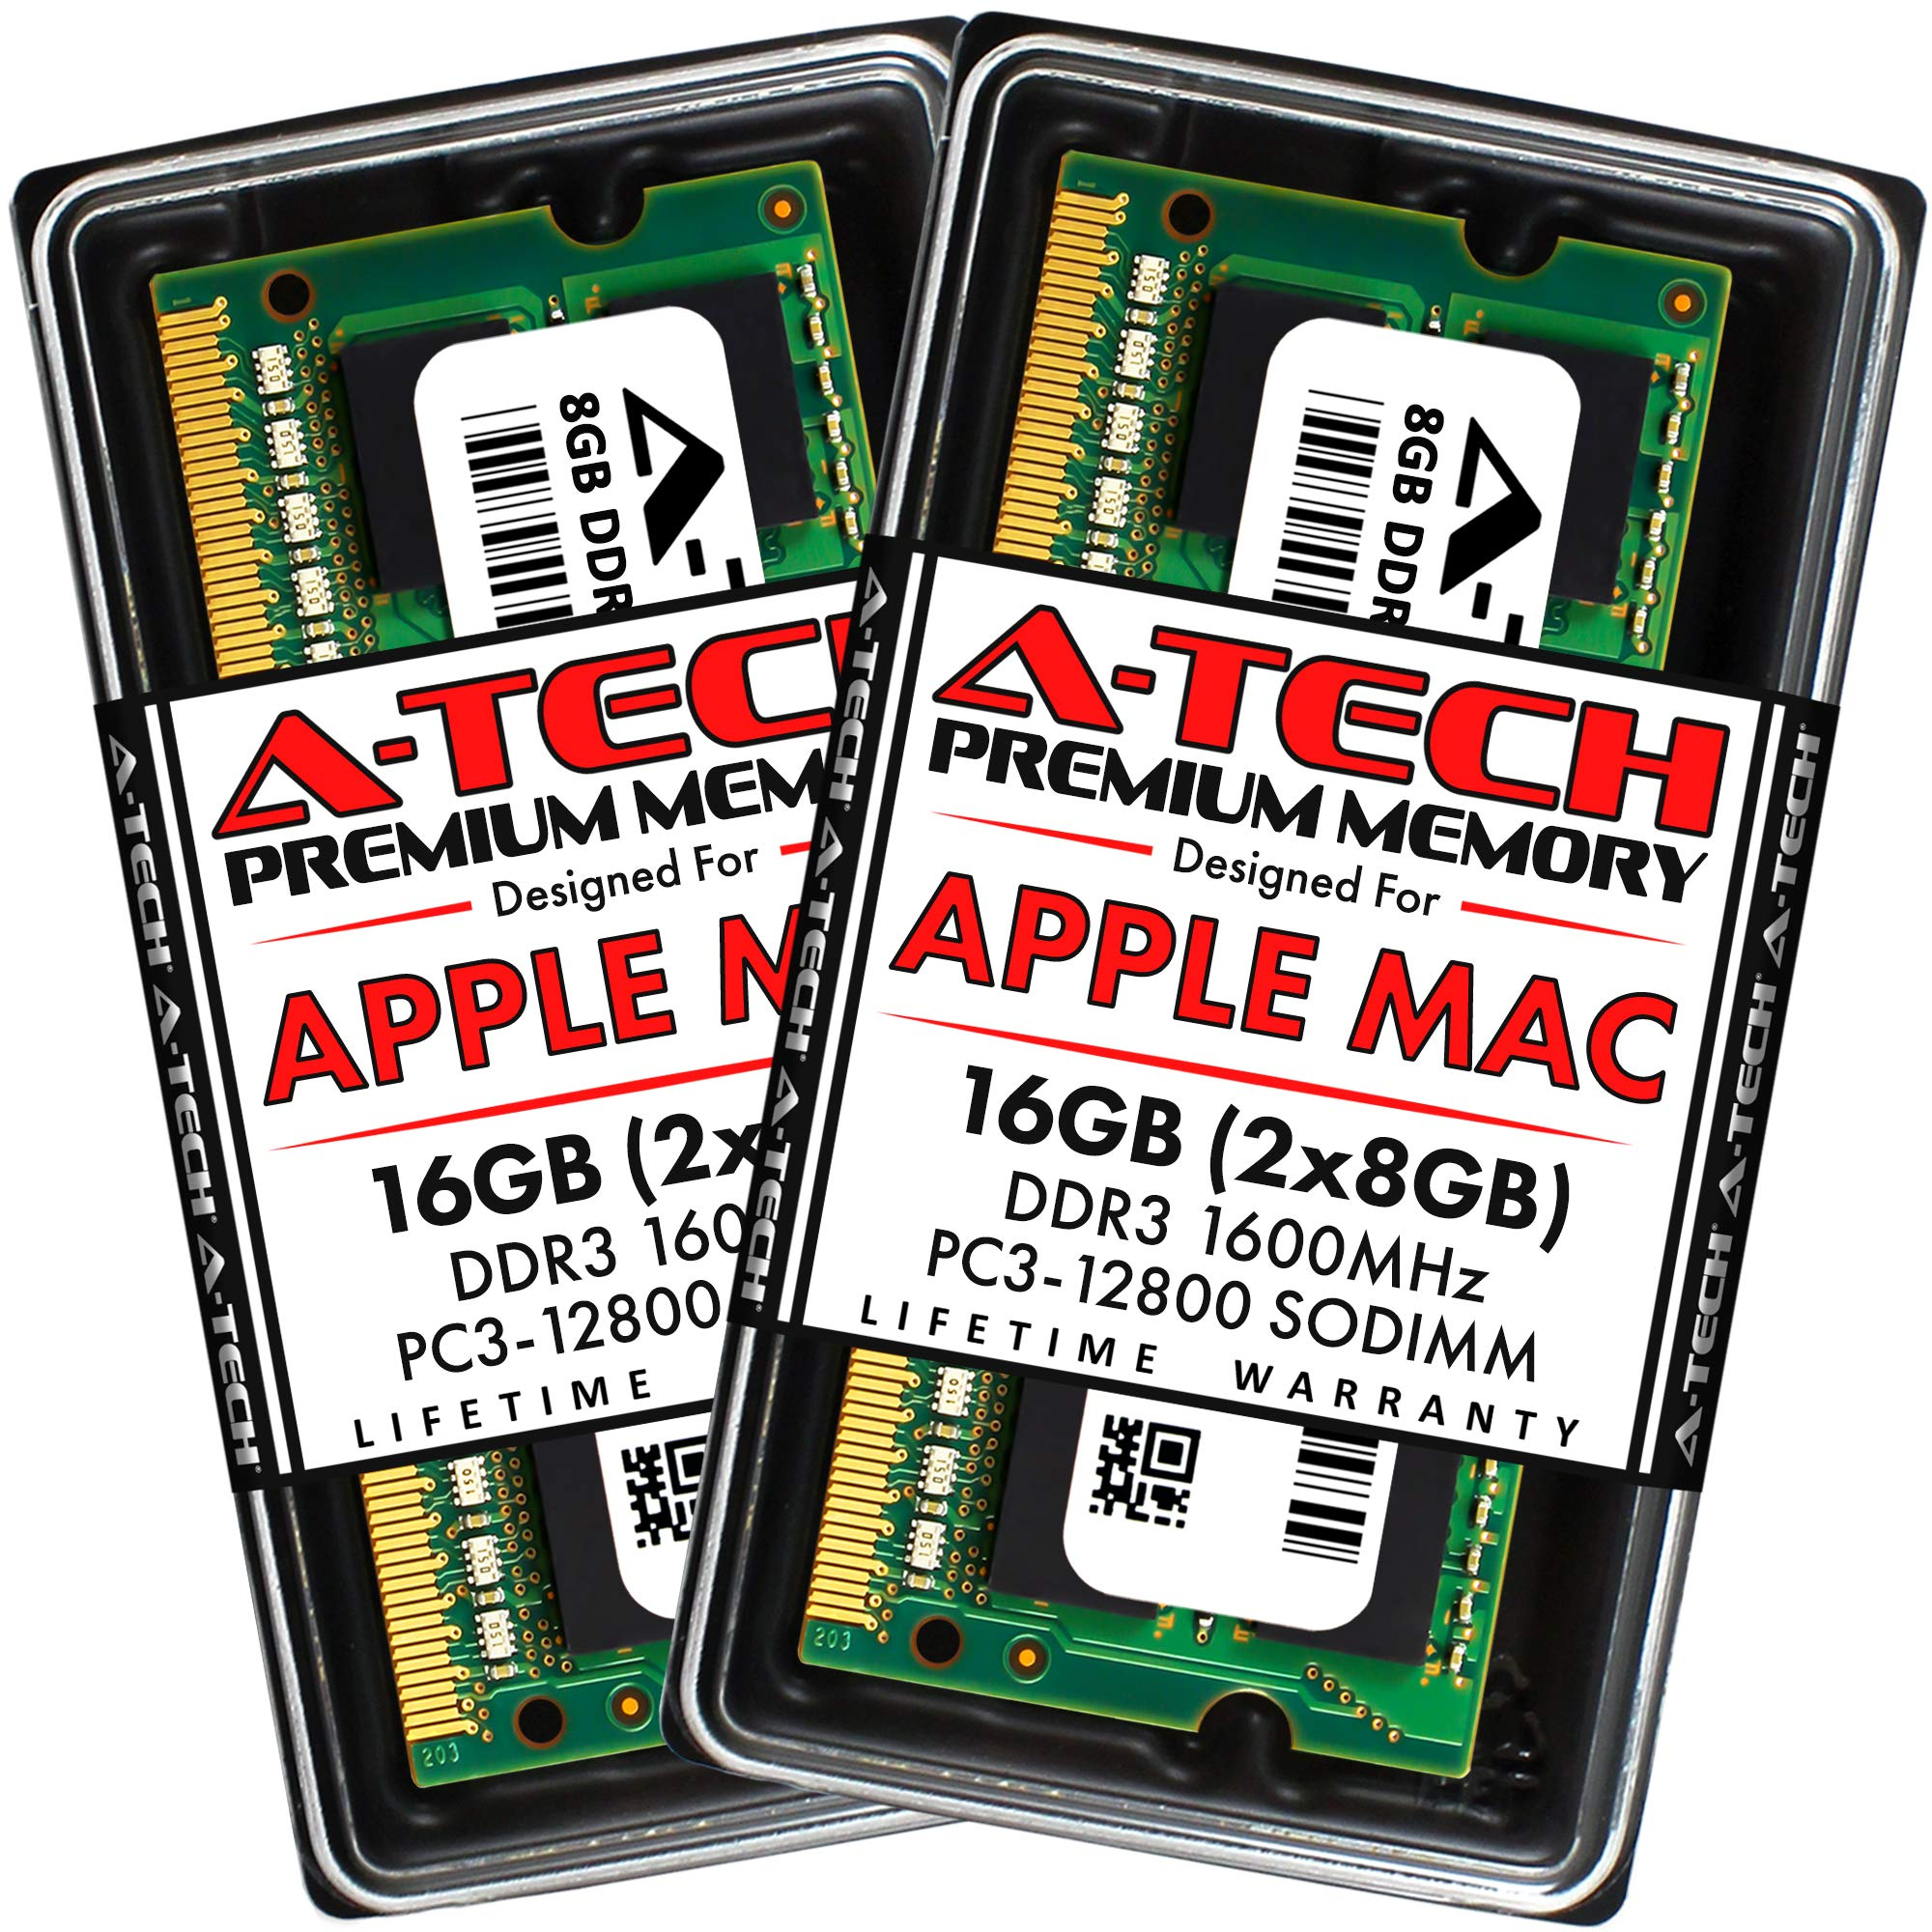 A-Tech 16GB (2x8GB) PC3-12800 DDR3 1600MHz RAM for Apple MacBook Pro (Mid 2012), iMac (Late 2012, Early/Late 2013, Late 2014, Mid 2015), Mac Mini (Late 2012) | 204-Pin SODIMM Memory Upgrade Kit